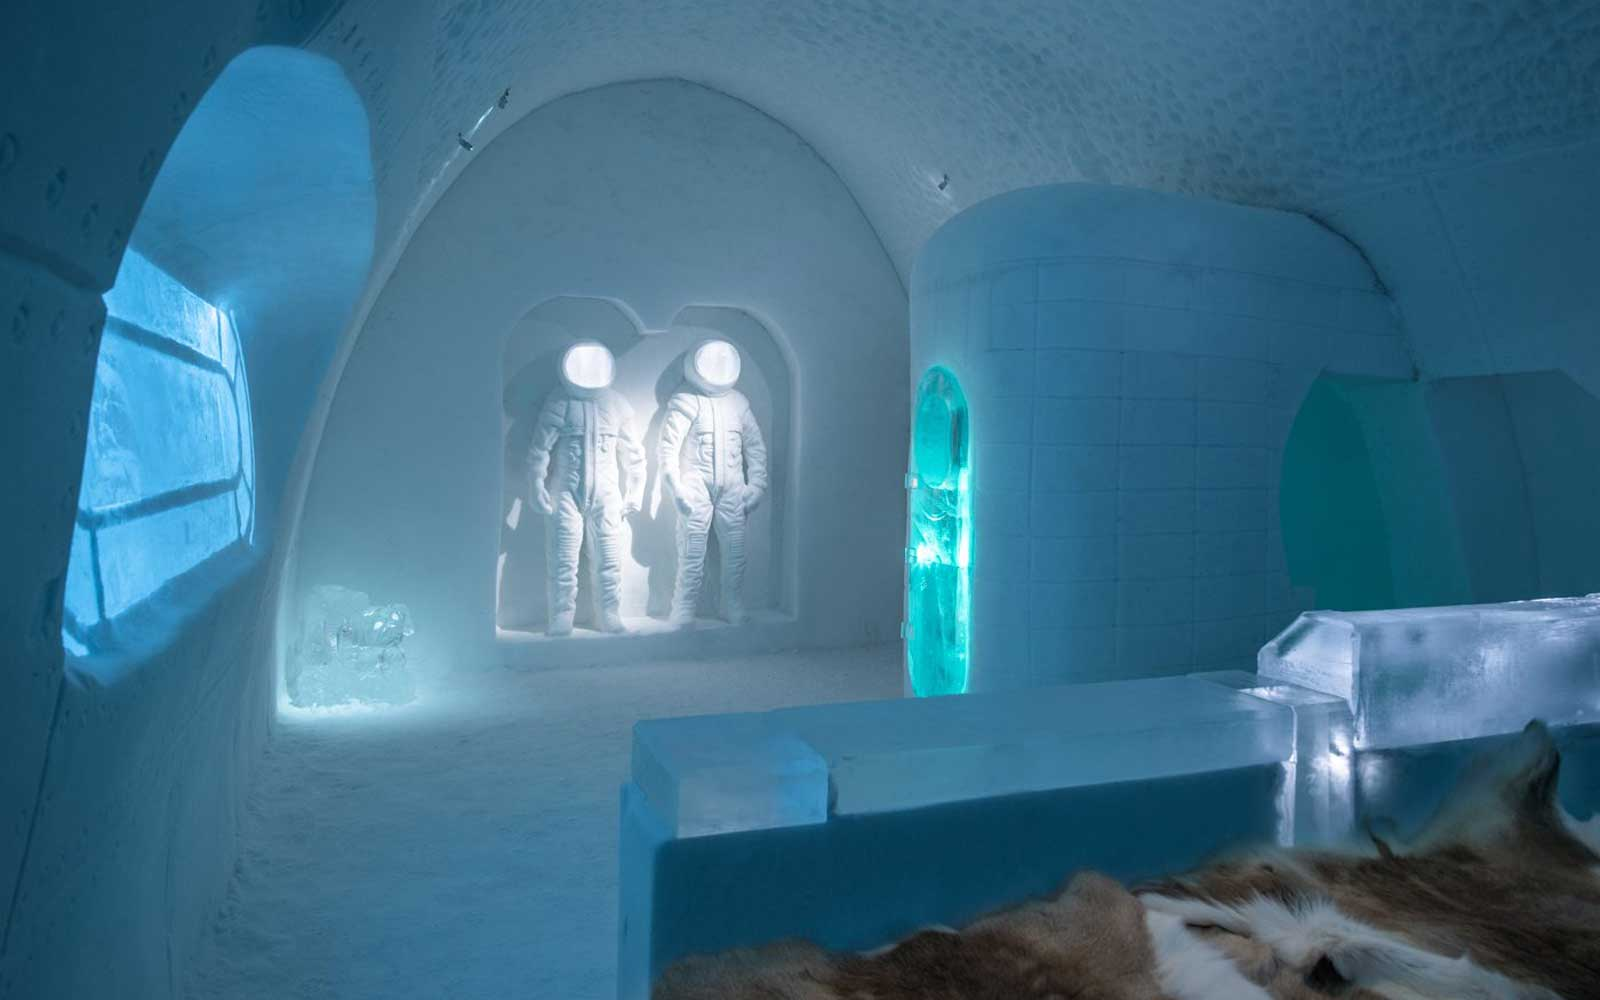 Sweden Ice Hotel Art Suite Space Room